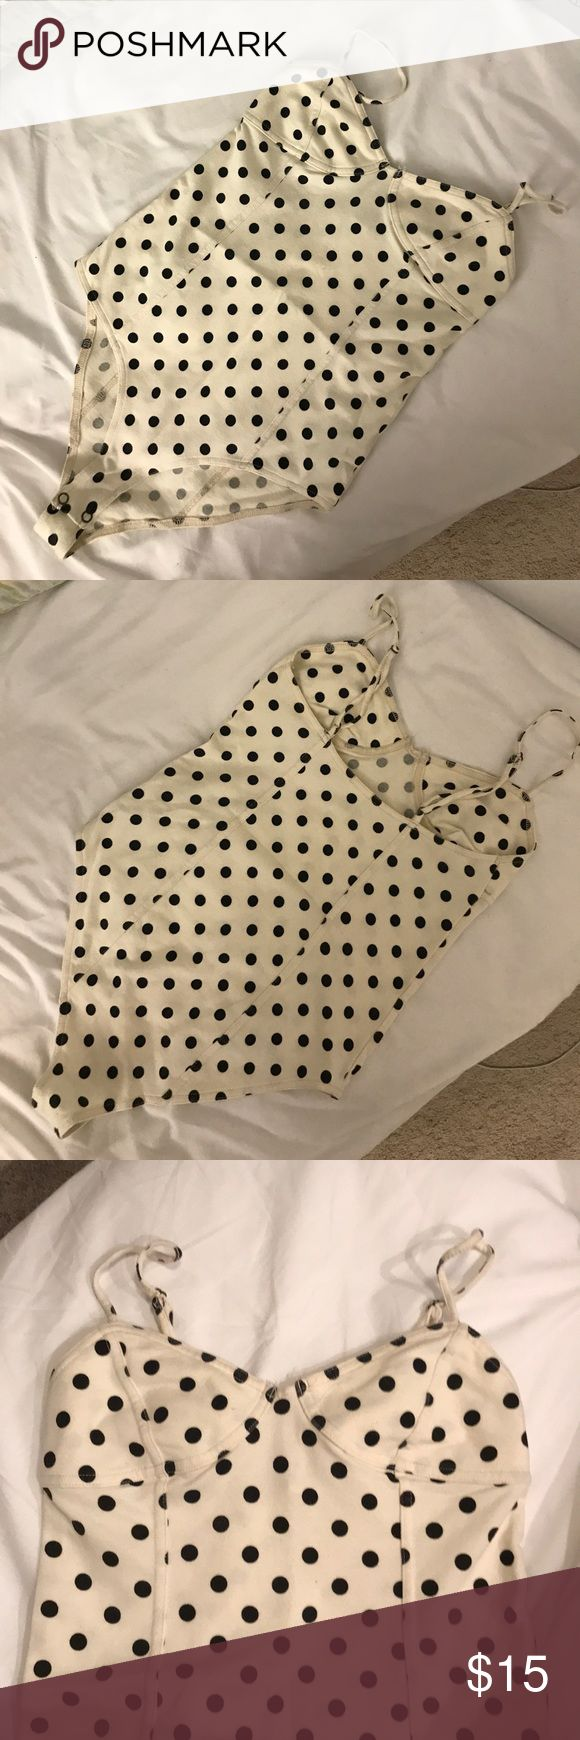 Polka Dot Body Suit Adjustable straps, buttons at the bottom, and very cute pattern. Looks cute with high waisted shorts or a circle skirt. Forever 21 Intimates & Sleepwear